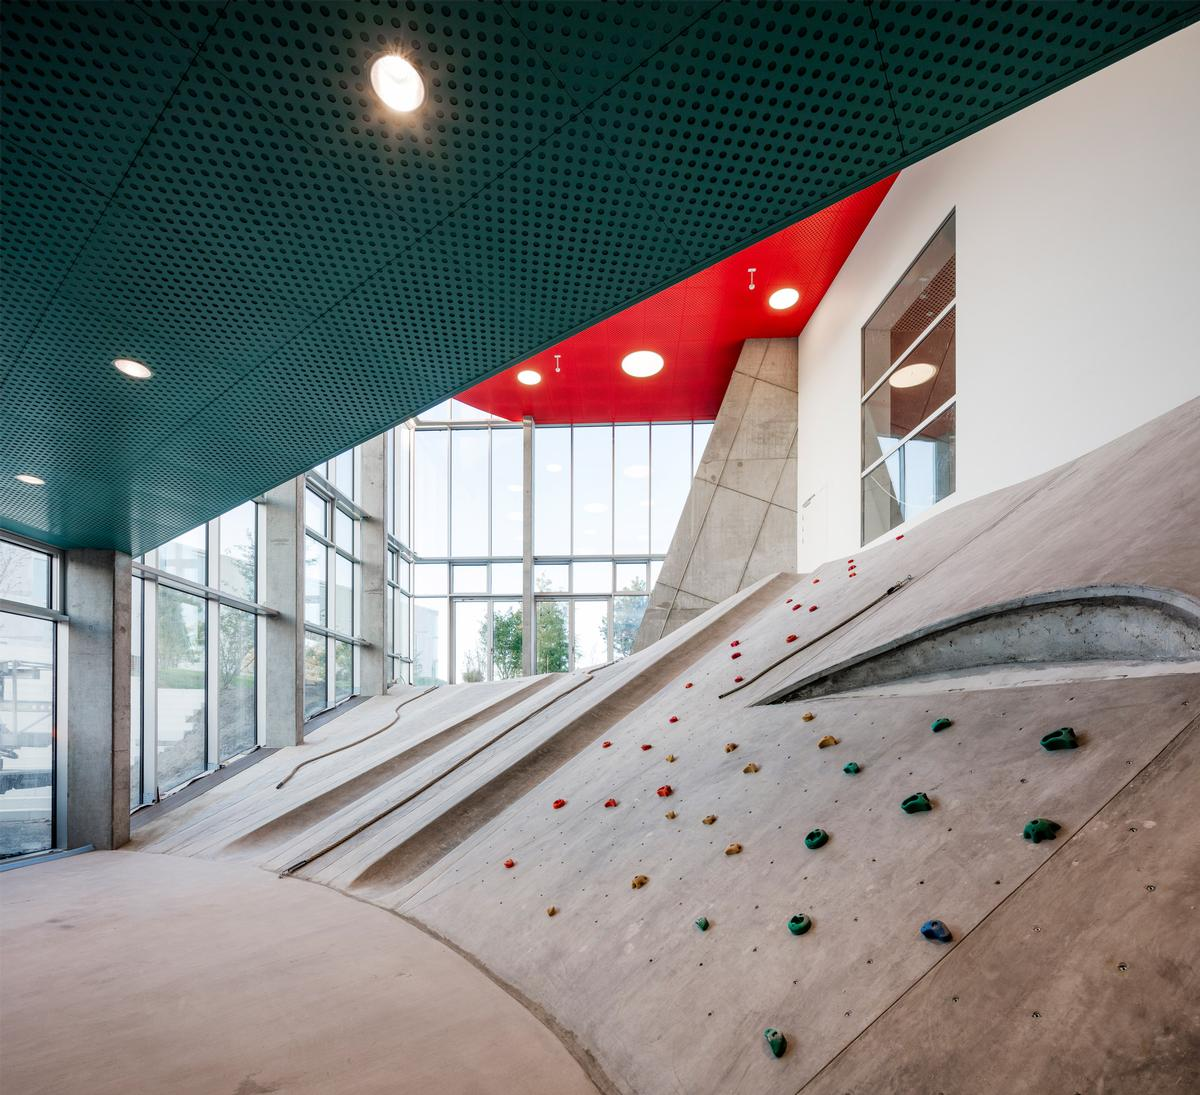 Slides, fireman's poles, labyrinths, nets and climbing walls provide a means of navigating around the Ku.Be / Adam Mørk